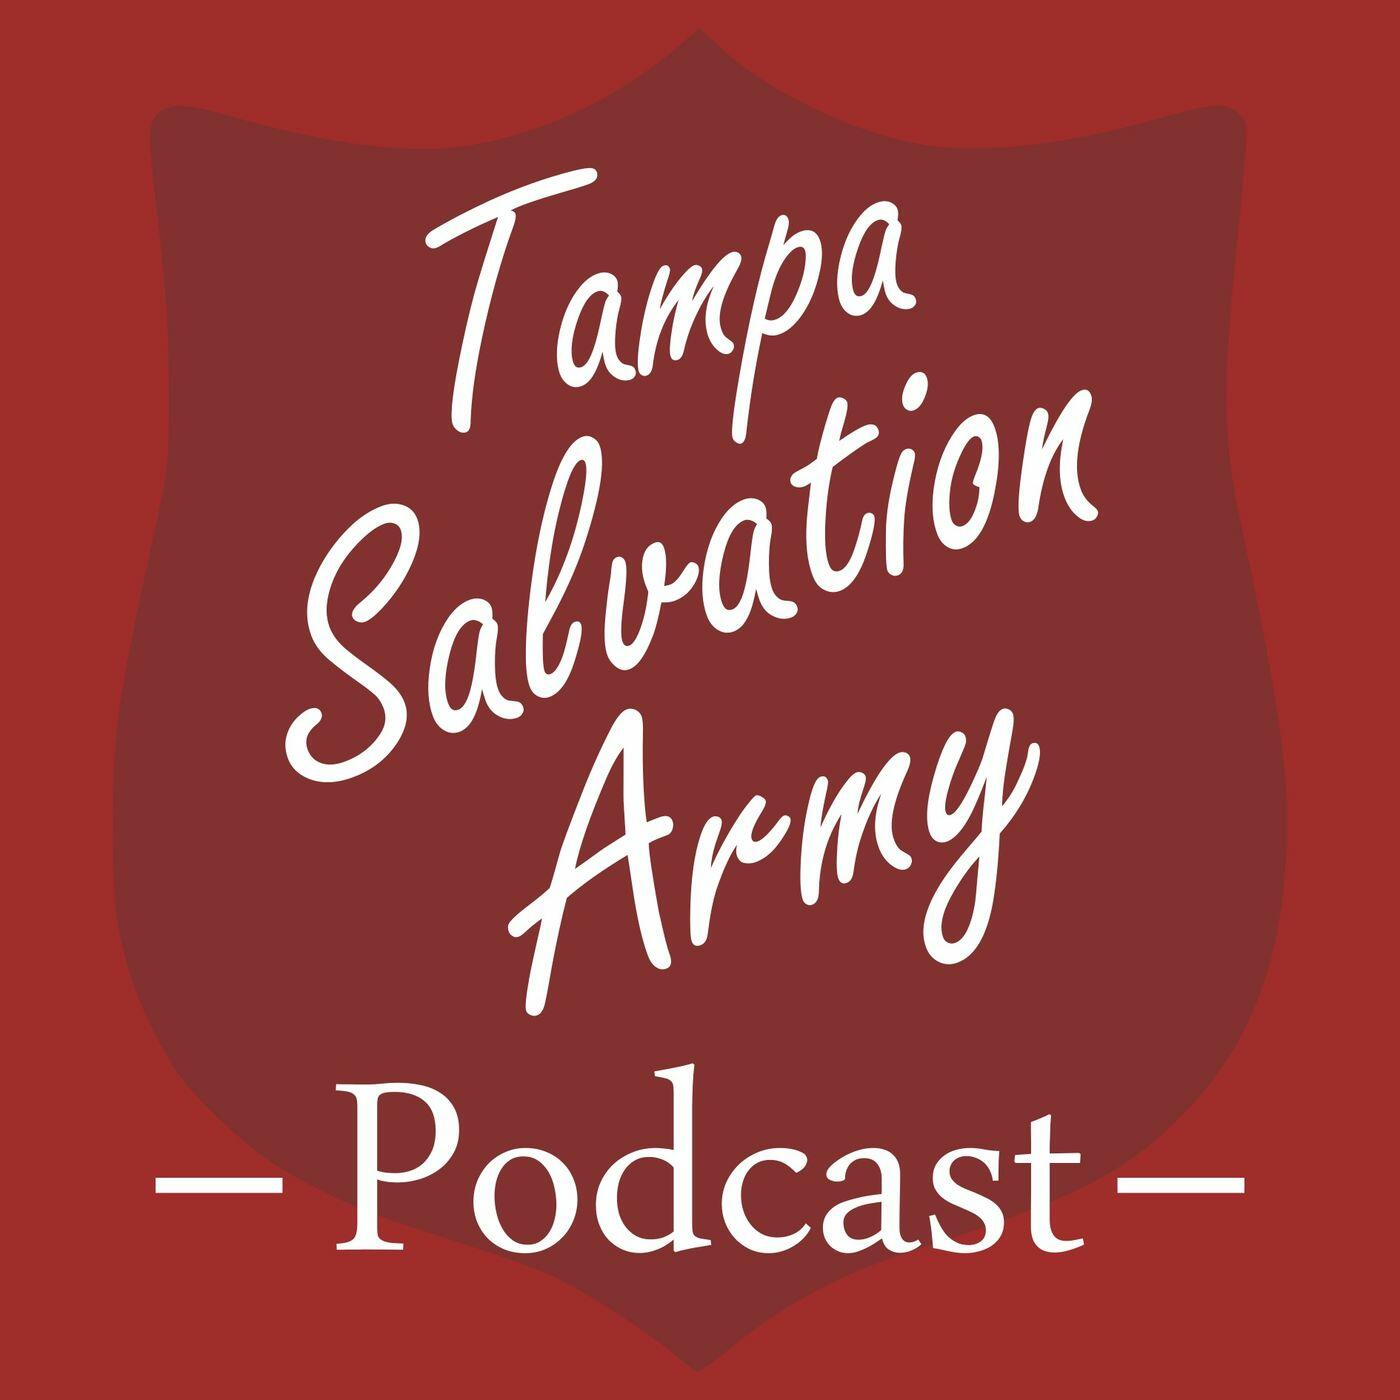 Tampa Salvation Army